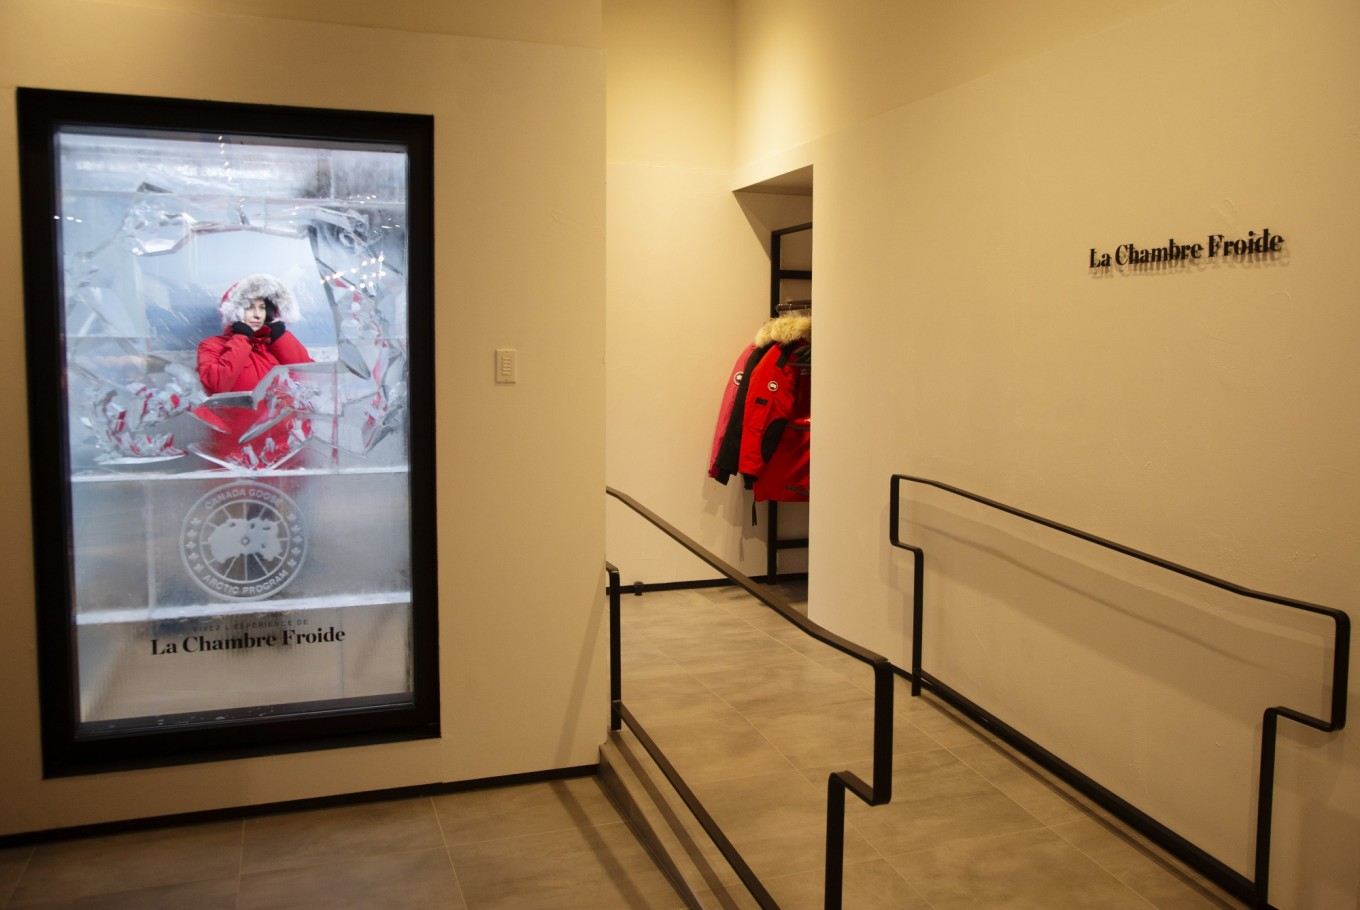 Canada Goose is turning the dressing room into a freezer